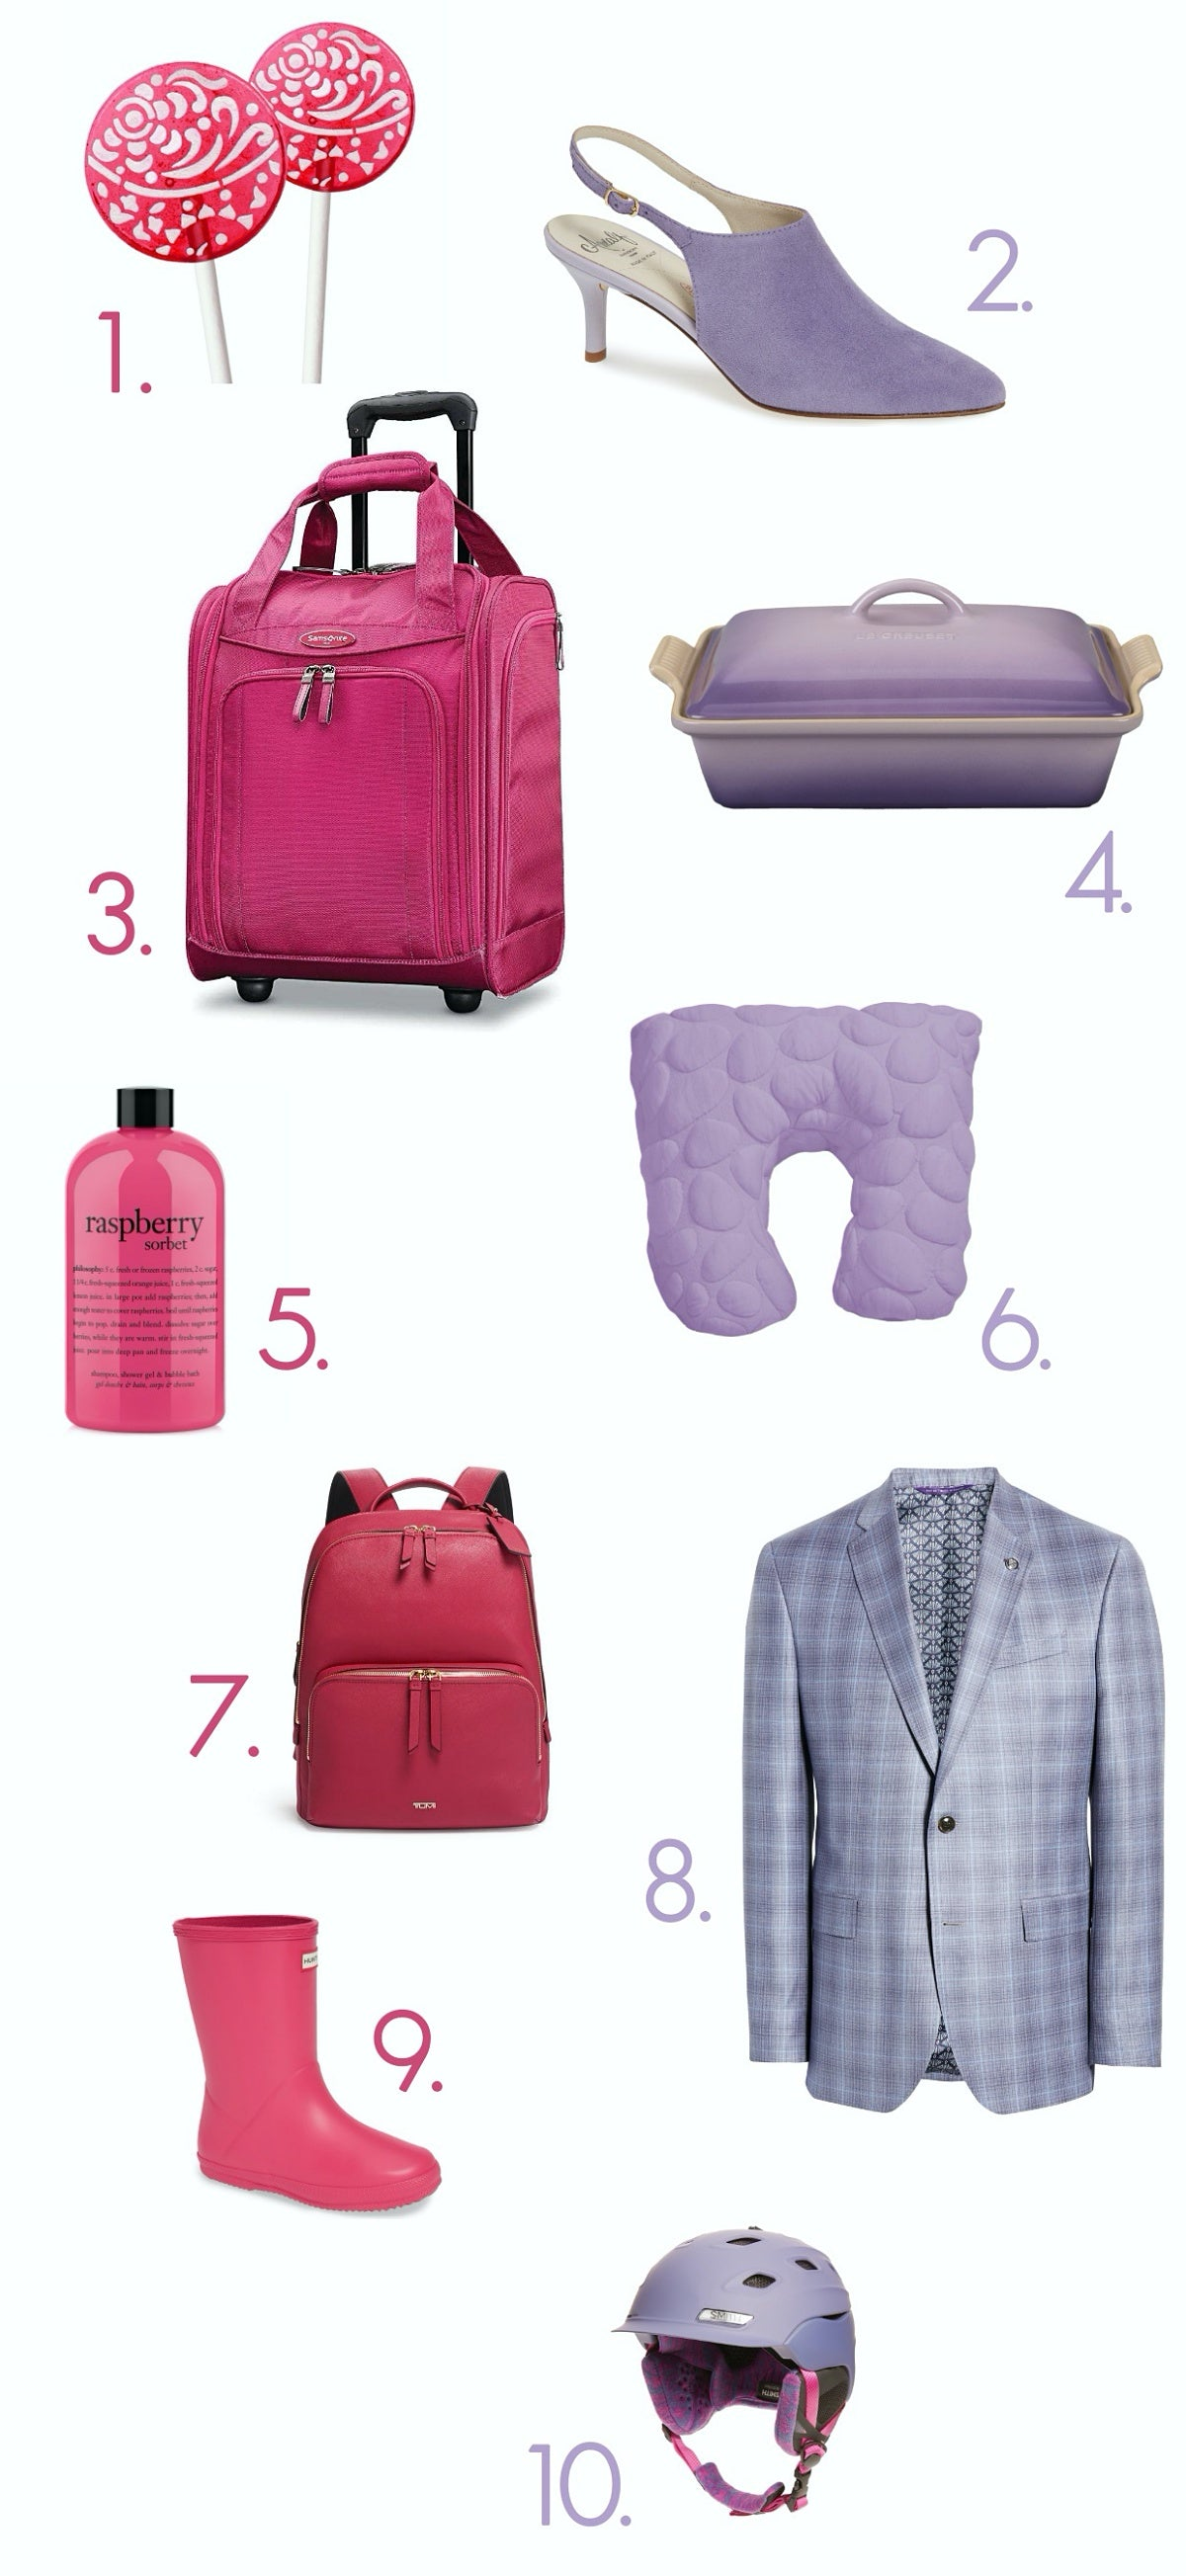 Color Craze Holiday Gift Guide - Raspberry Sorbet and Purple Rose